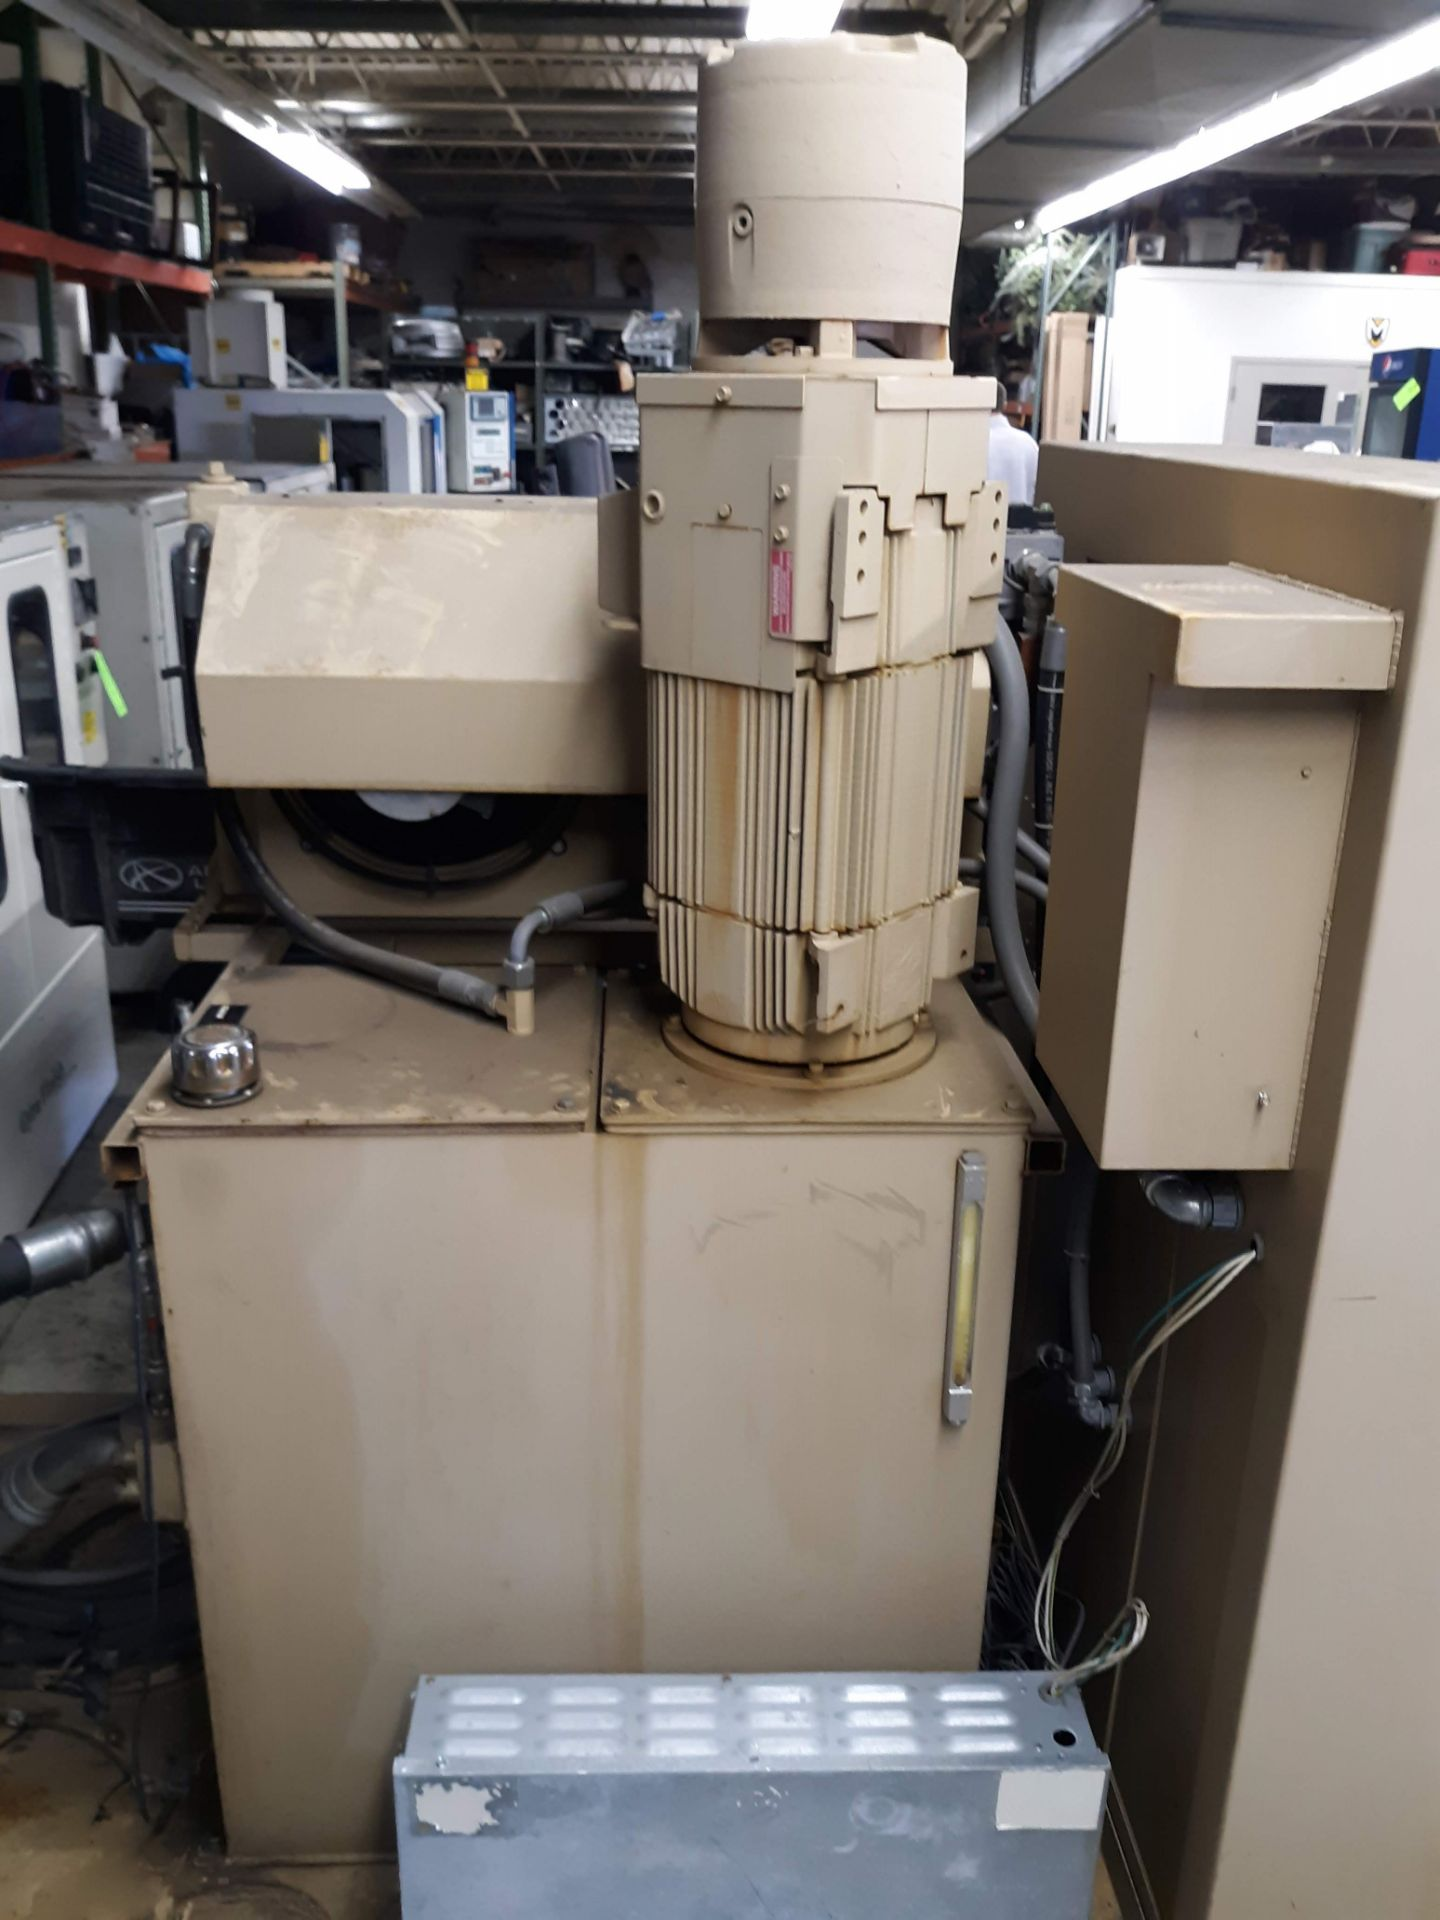 Lot 1235 - RITTER TECHNOLOGY LLC MODEL-830190-RES ASSM S#H51772-0909 (LOCATED AT: 433 COUNCIL DRIVE, FORT